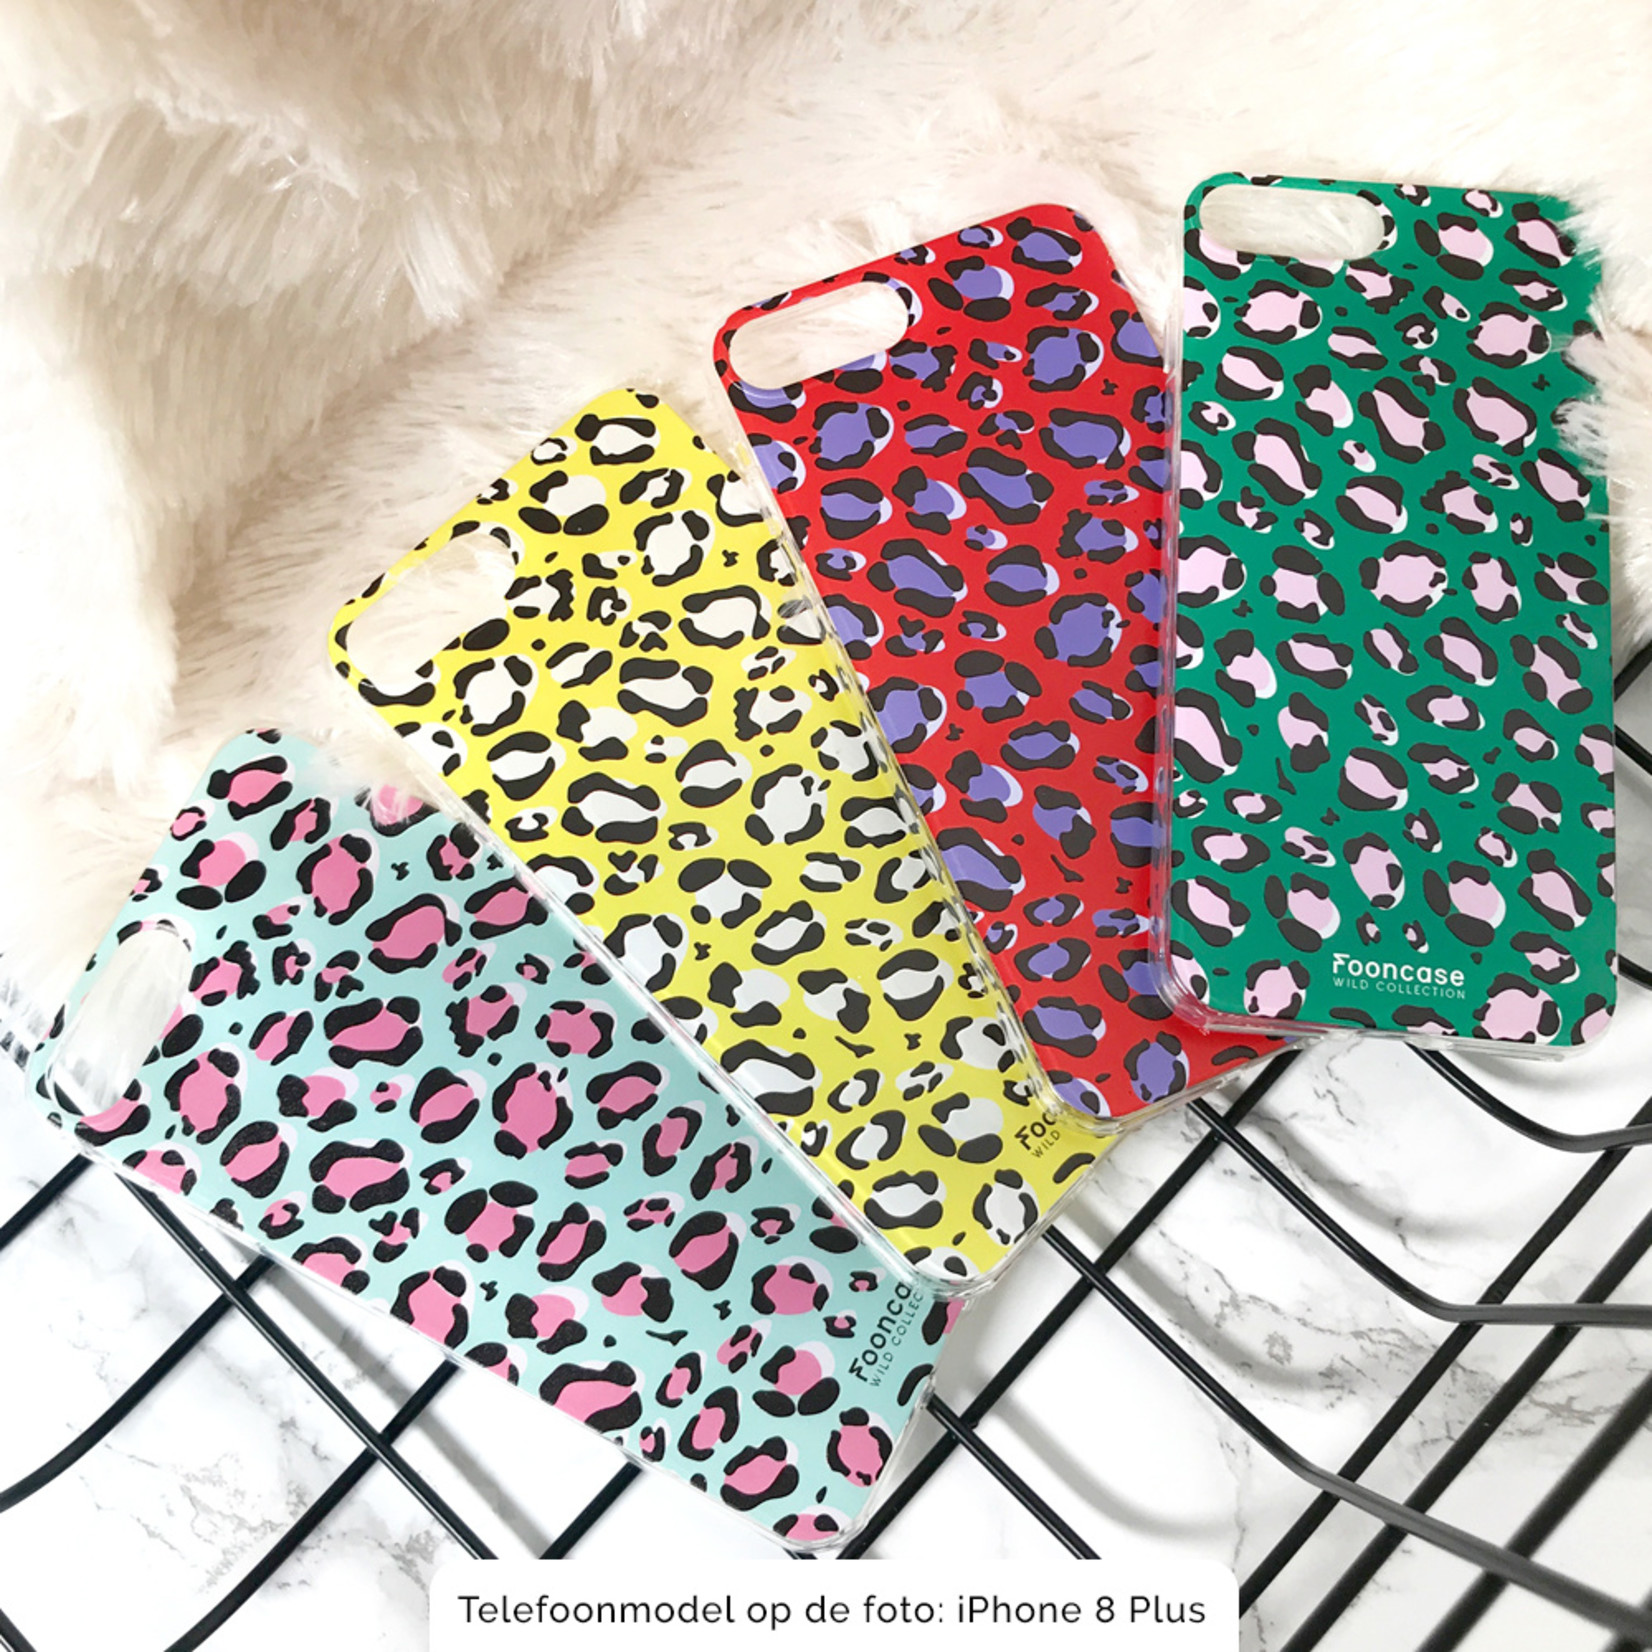 FOONCASE Samsung Galaxy S10 Plus hoesje TPU Soft Case - Back Cover - WILD COLLECTION / Luipaard / Leopard print / Blauw